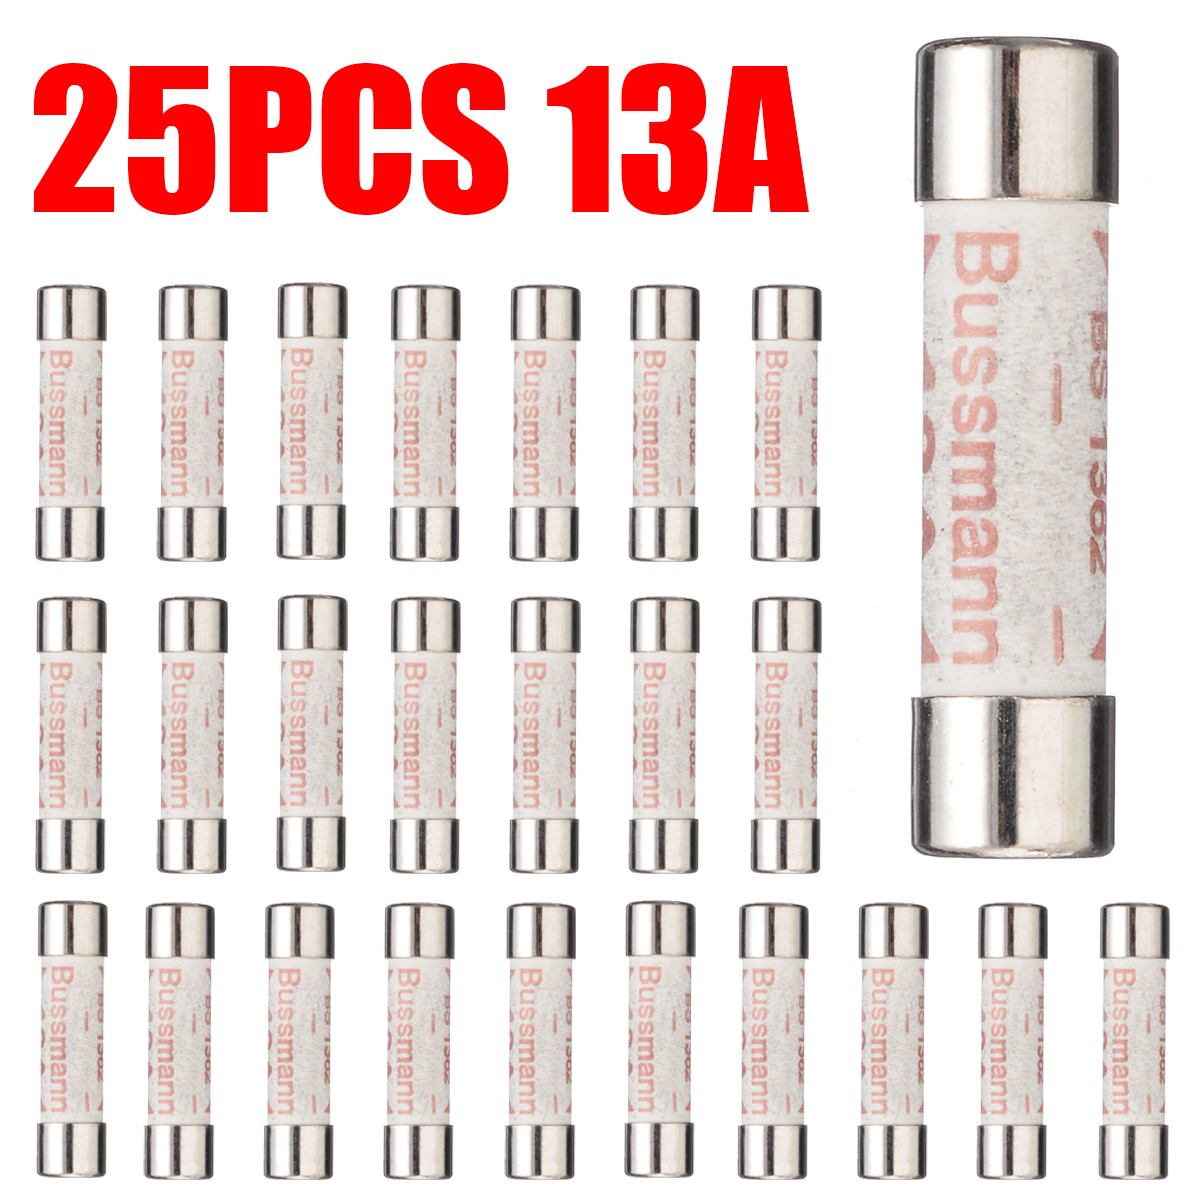 10 x 3 A Fuses Main Plug Electrical Fuse Domestic British Standards Household